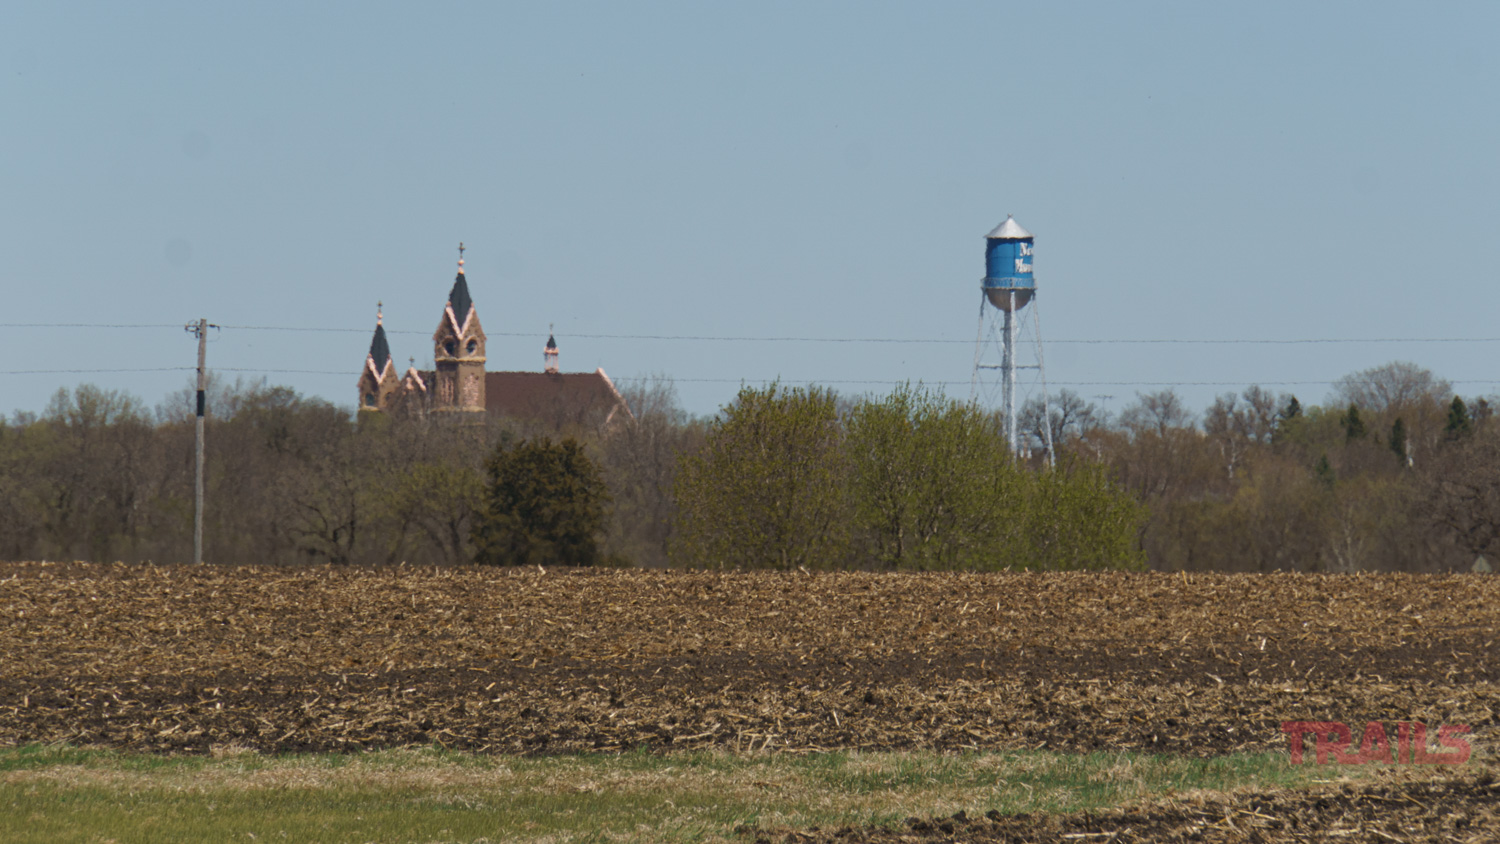 View of New Munich, MN from a distance with Immaculate Conception Church and water tower